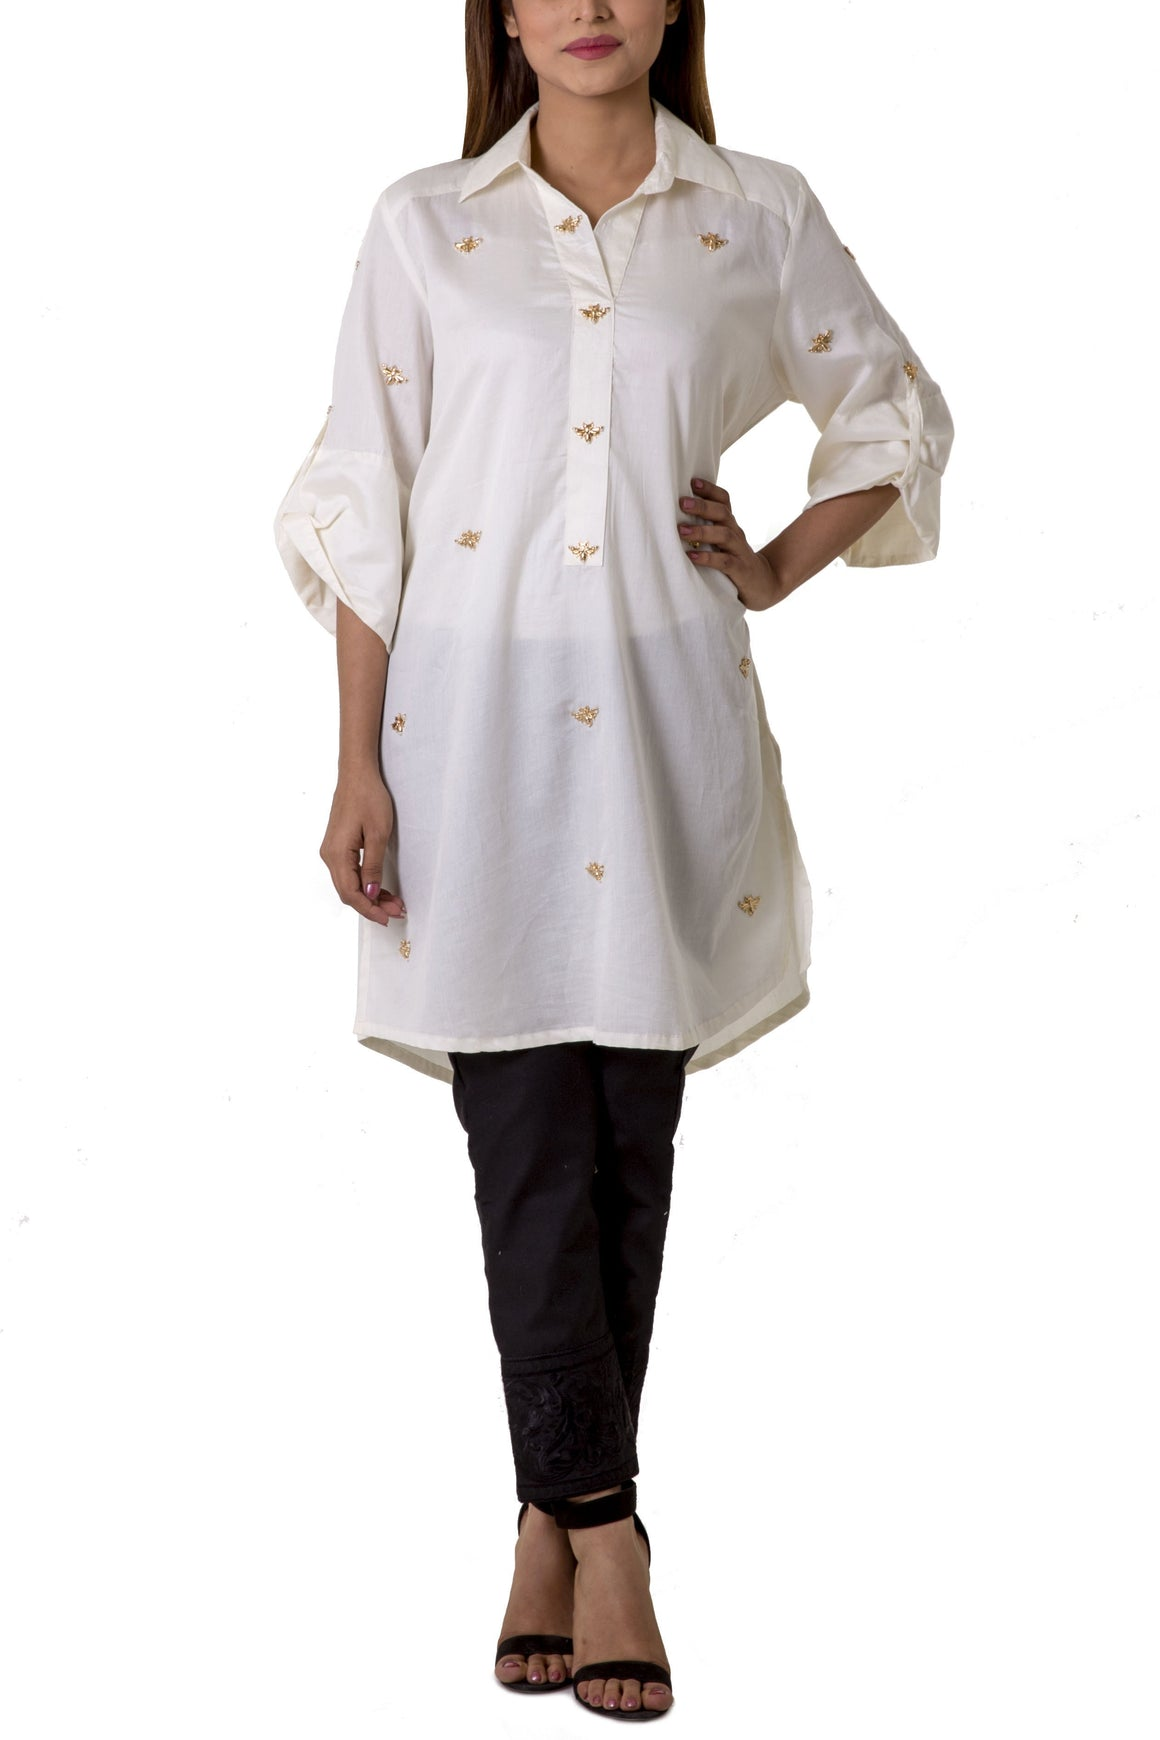 Mehreen Noorani - Le Classique Cream Cotton Collared Tunic